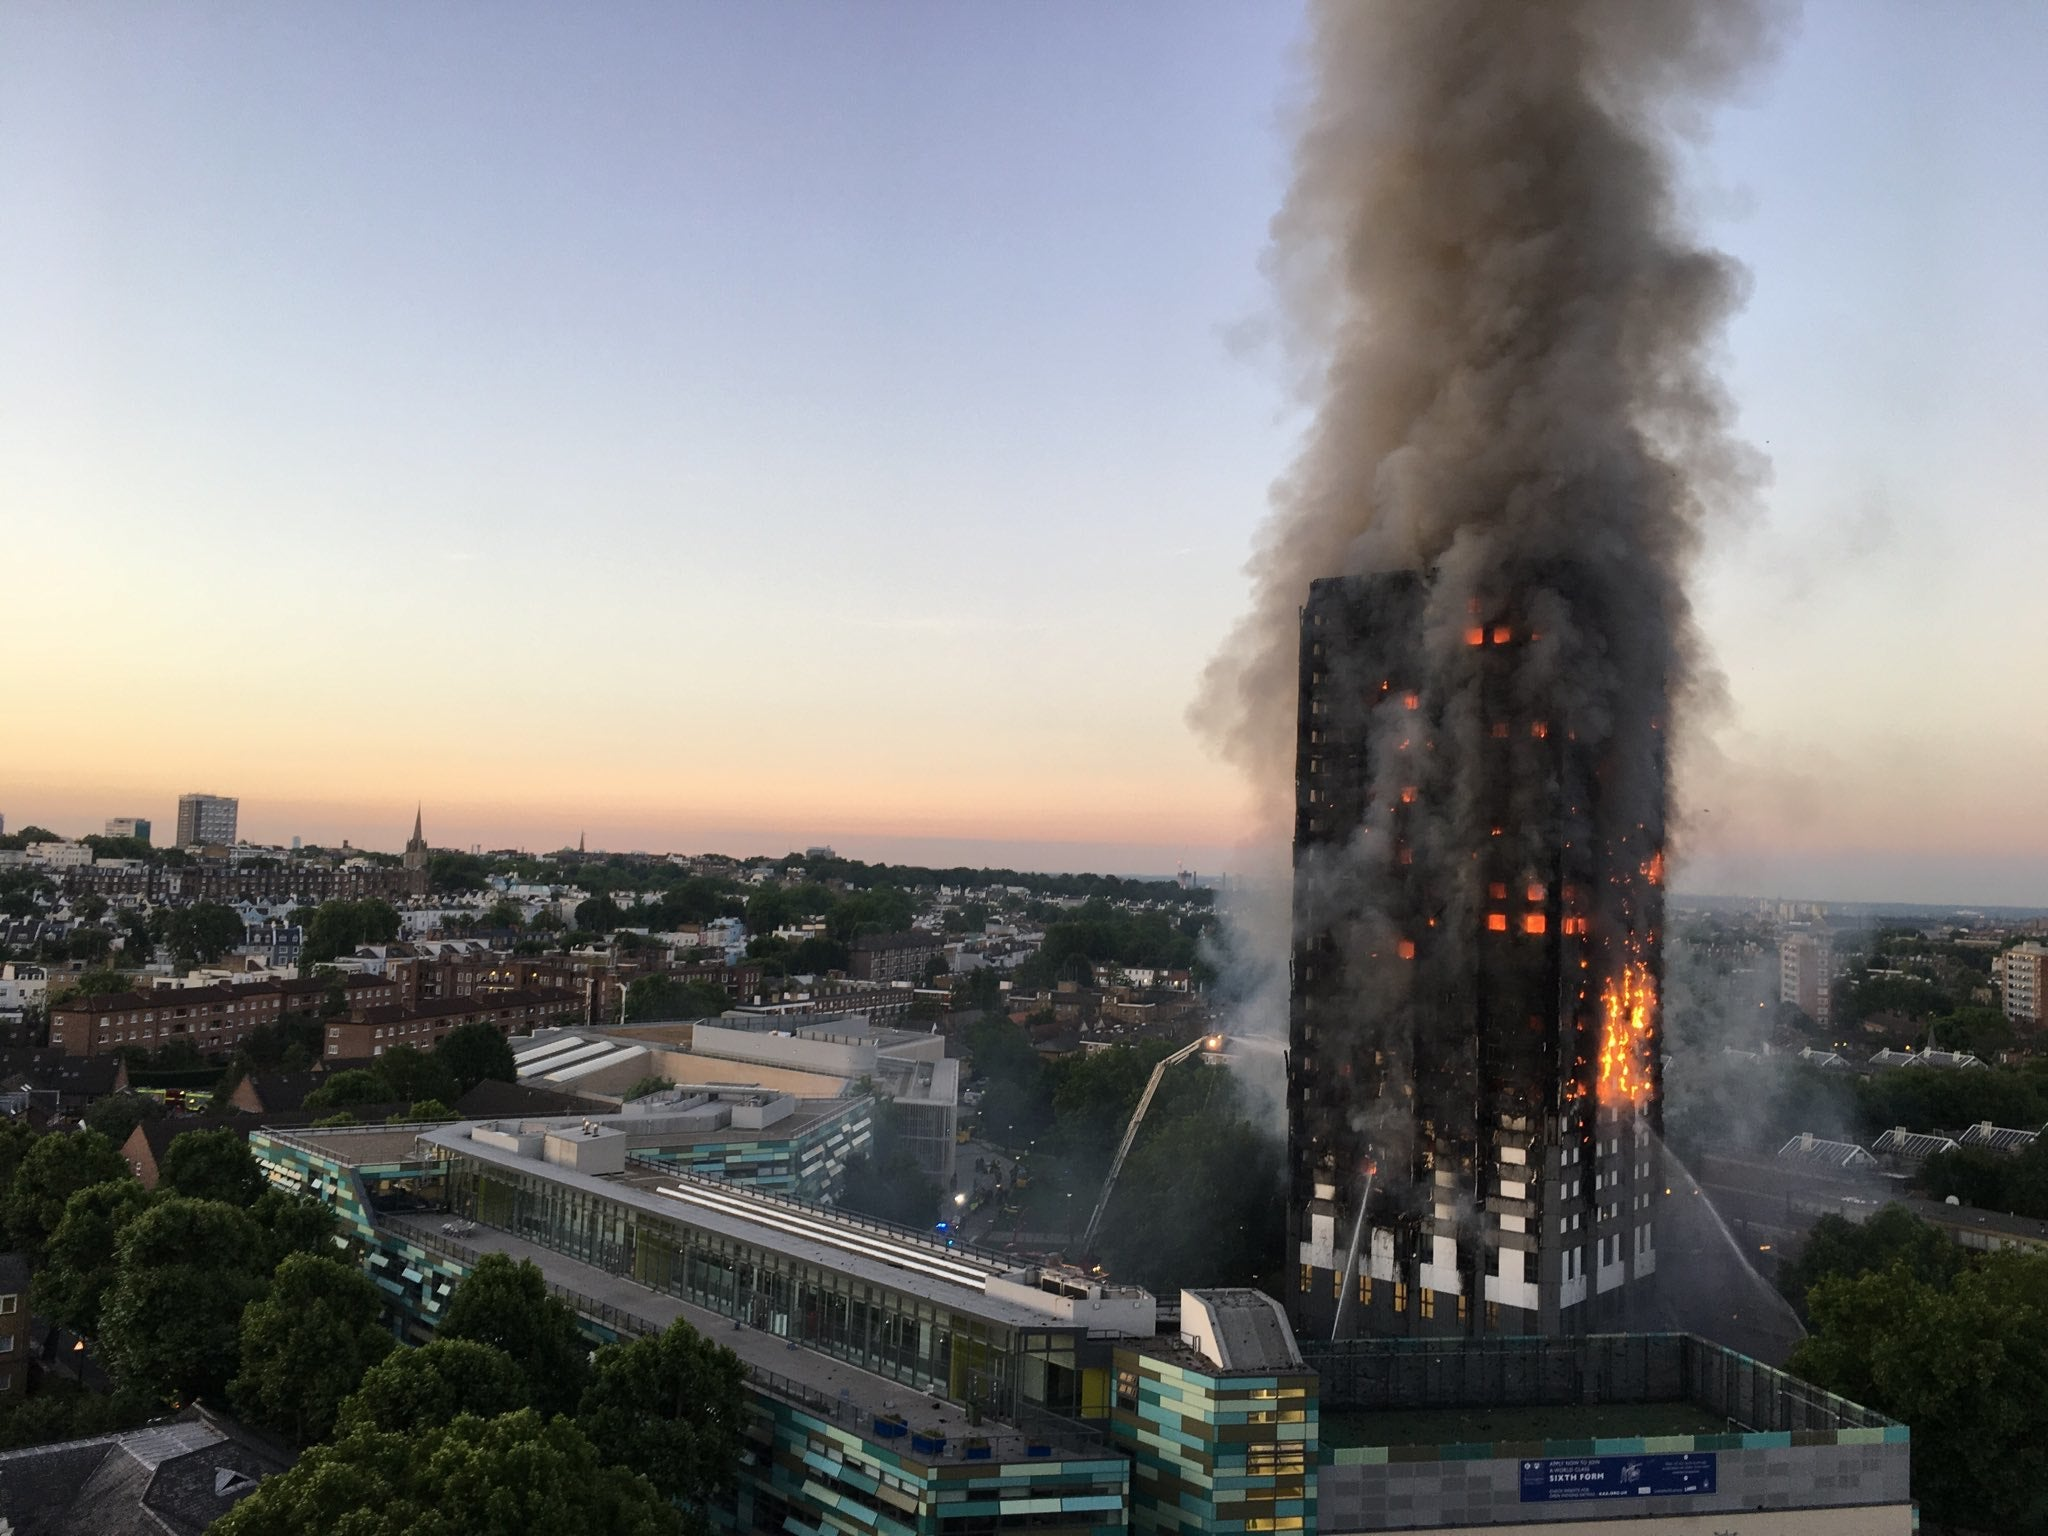 Firefighters try to pout out the blaze at Grenfell Tower